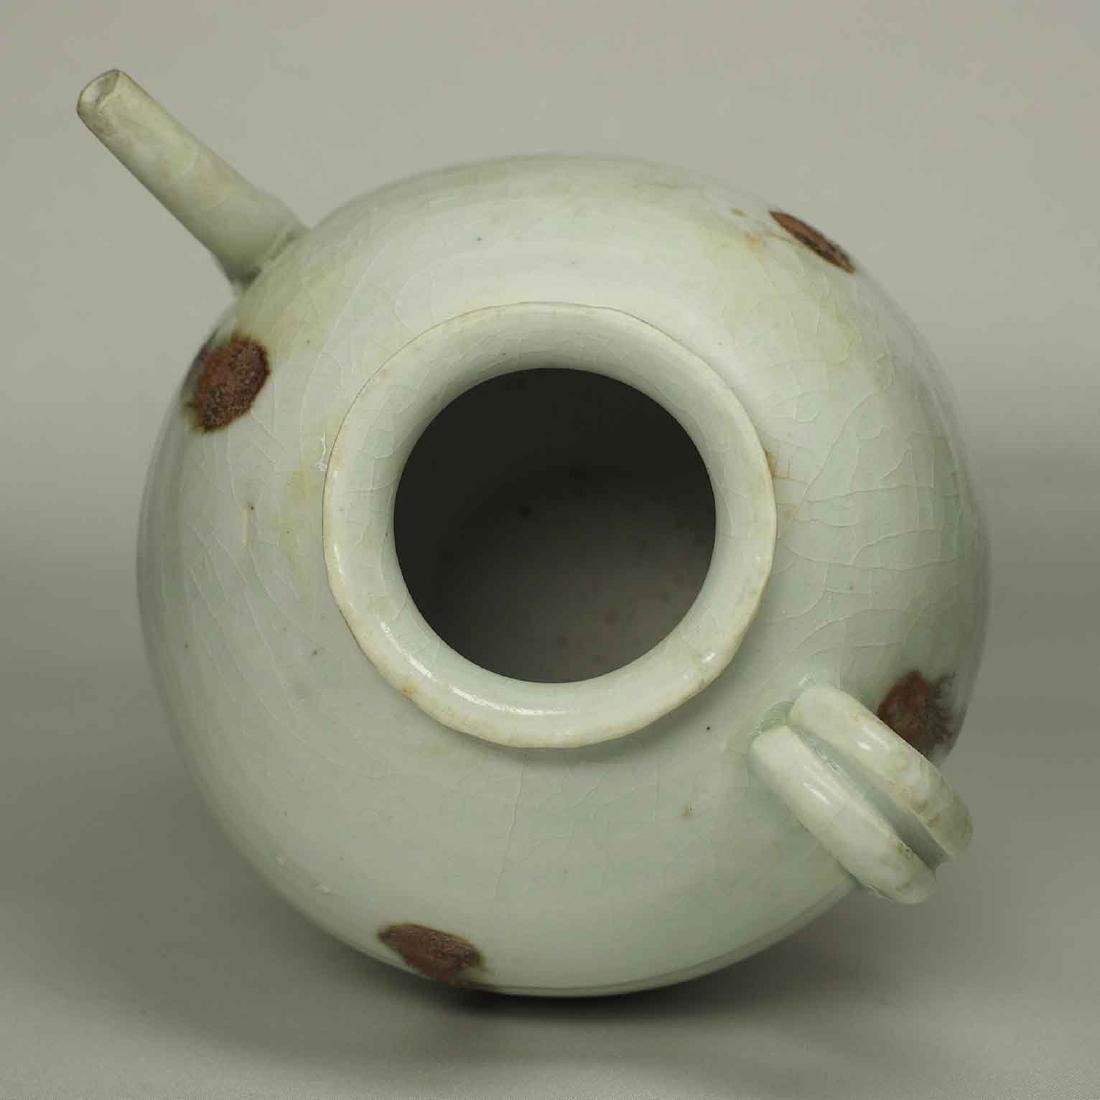 Ewer with Brown Spot, Yuan Dynasty - 11